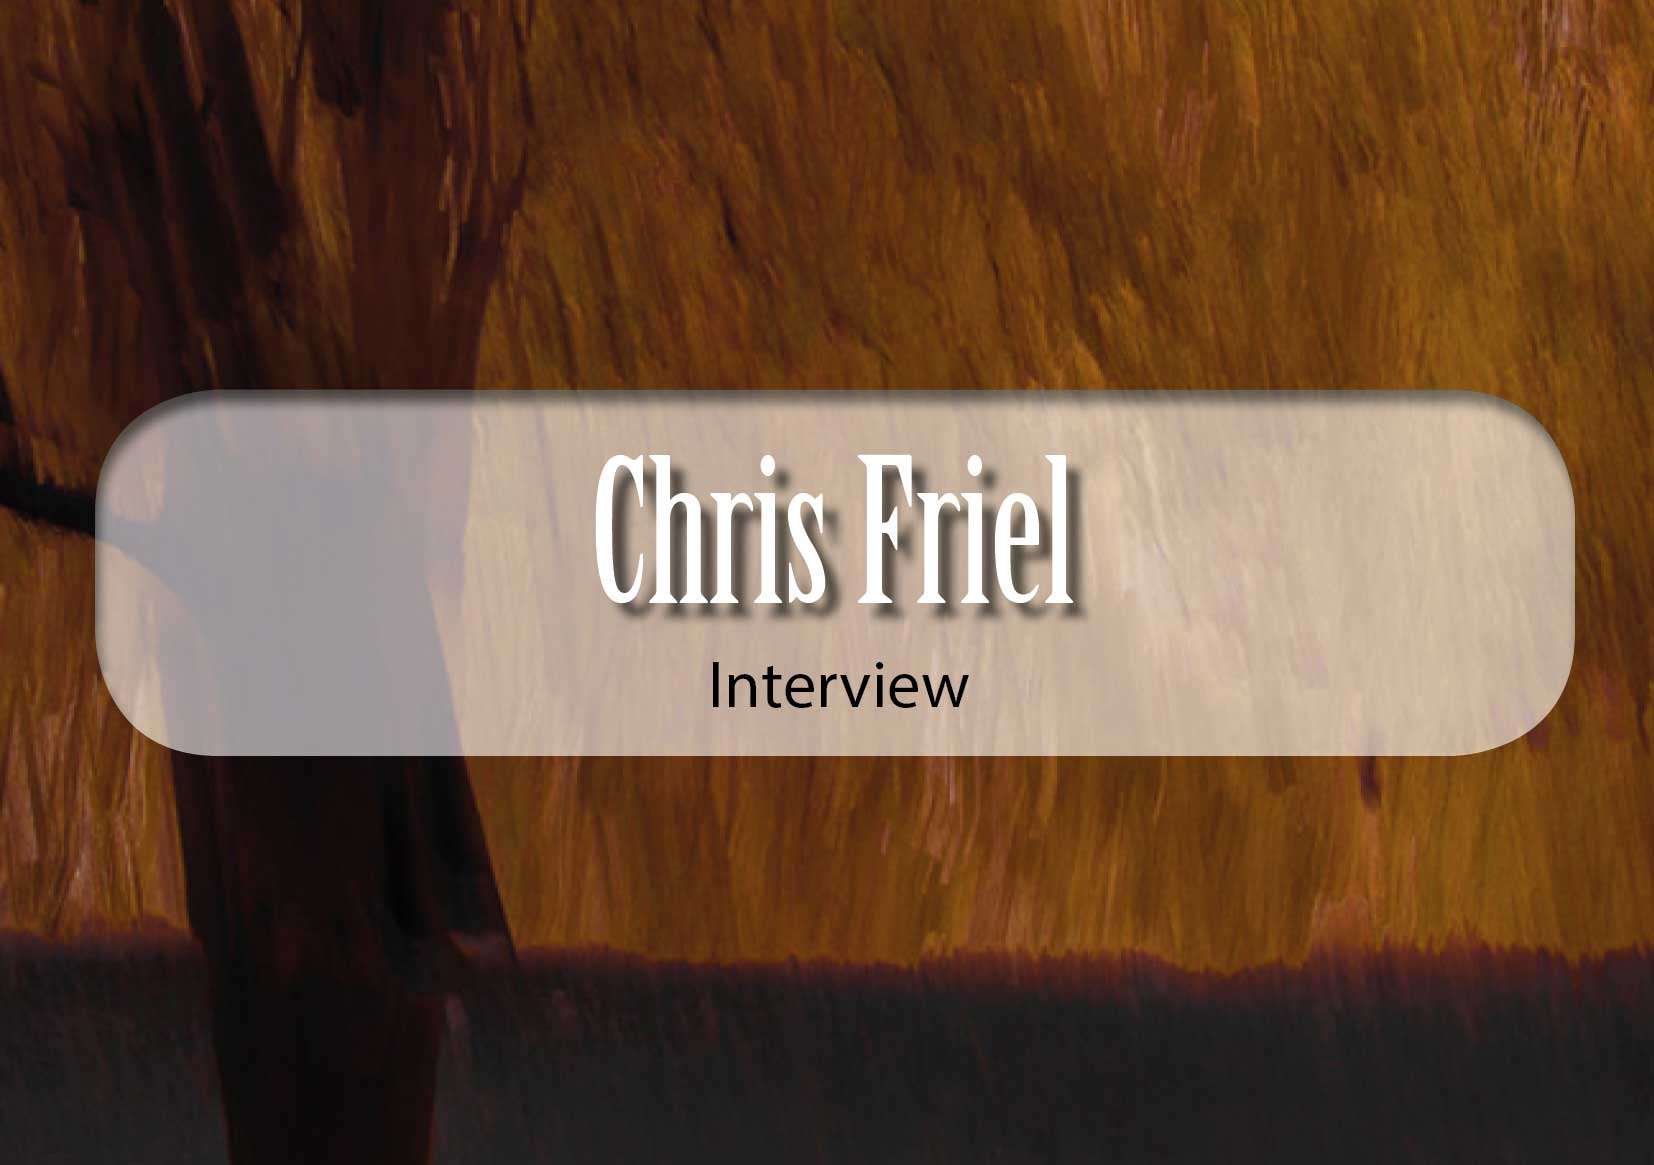 Chris Friel Interview